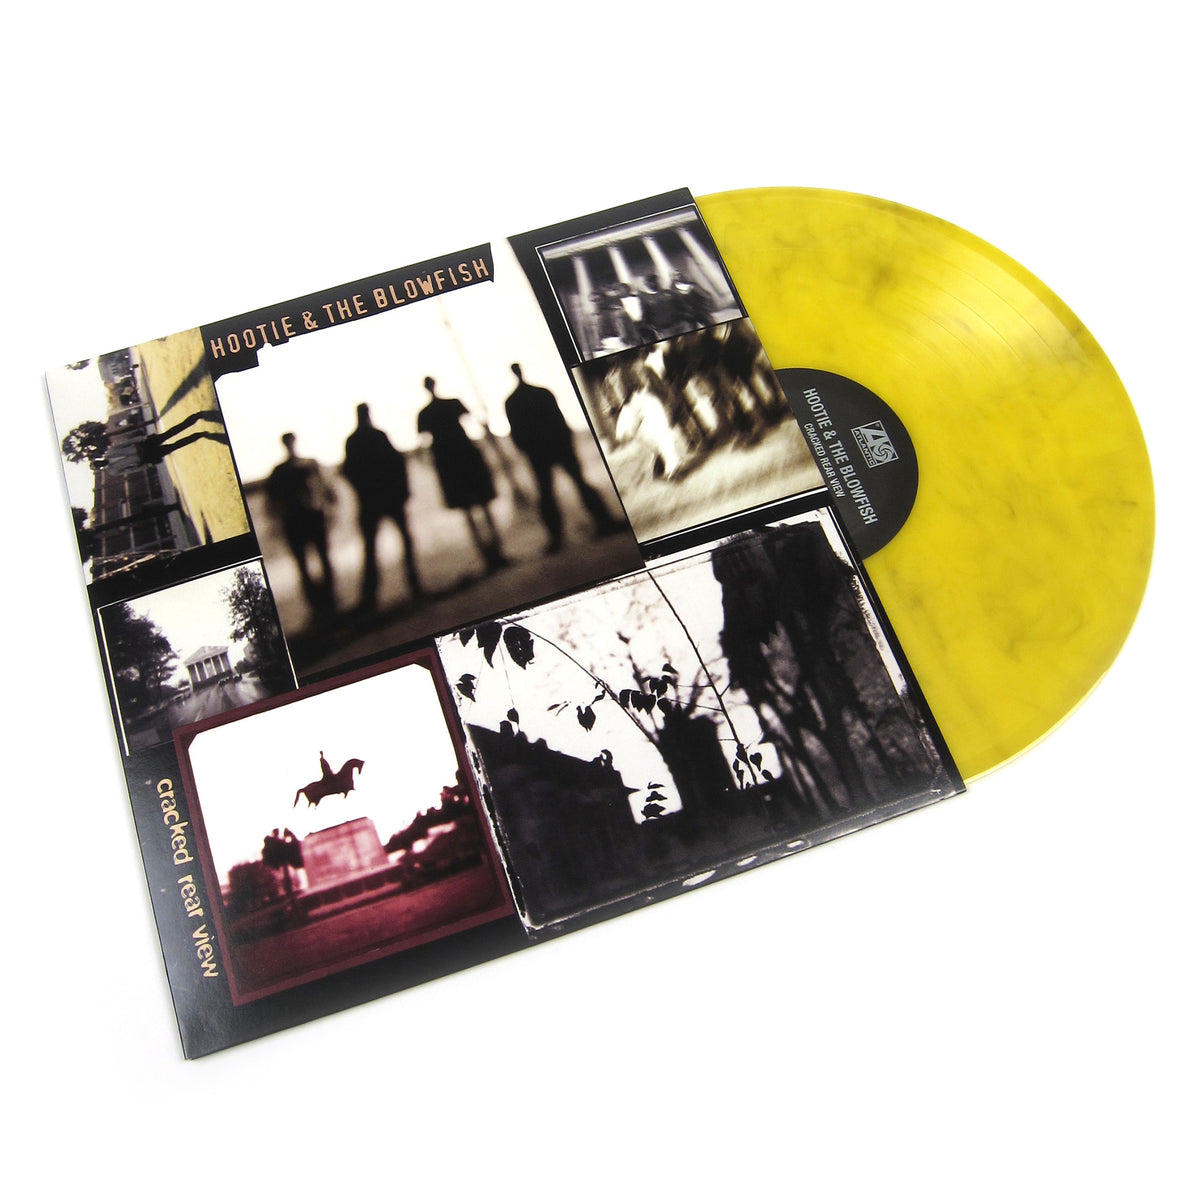 Hootie & The Blowfish: Cracked Rear View (Colored Vinyl) Vinyl LP